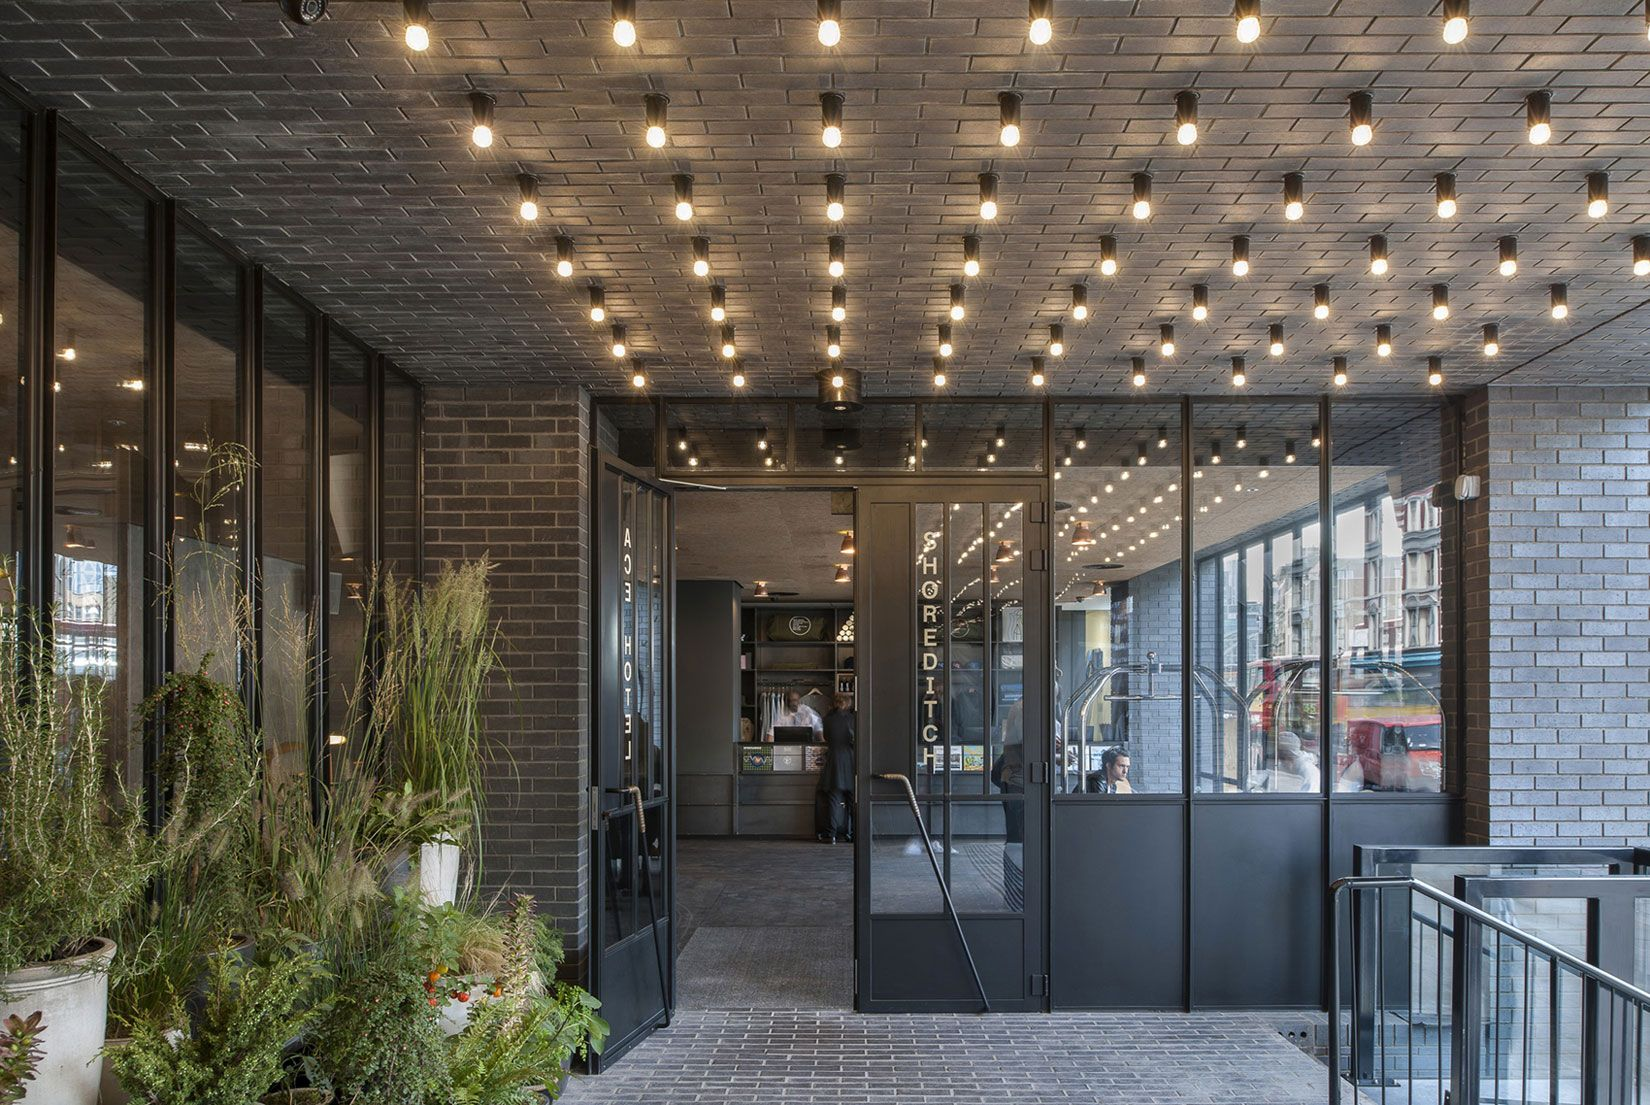 Ace Hotel London by Universal Design Studio